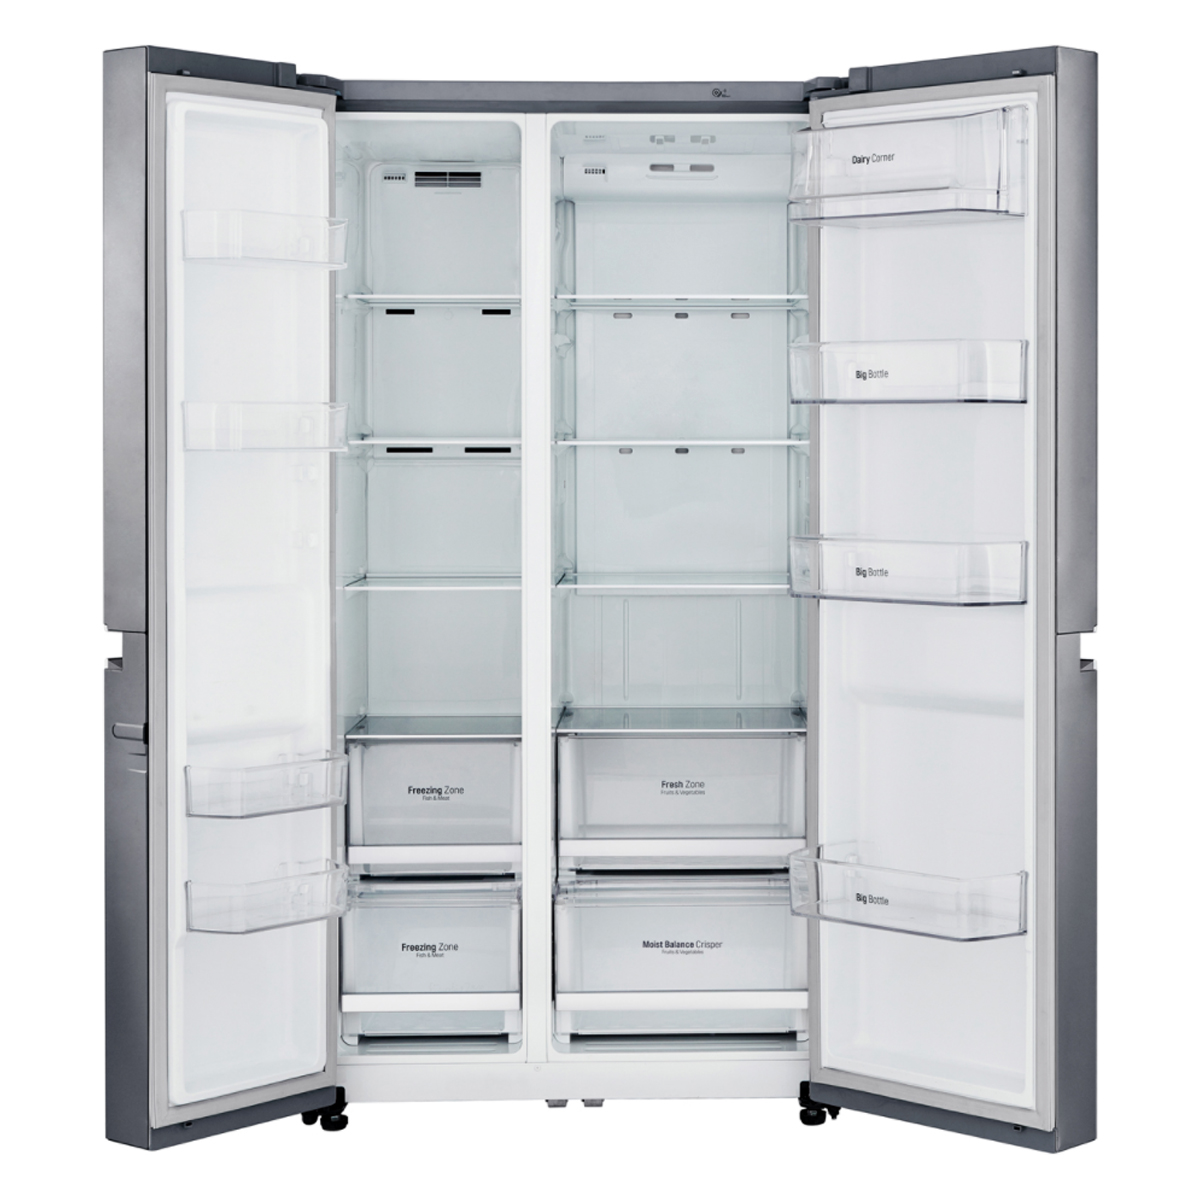 LG GS-B680PL 687Litres Side by Side Fridge 43377